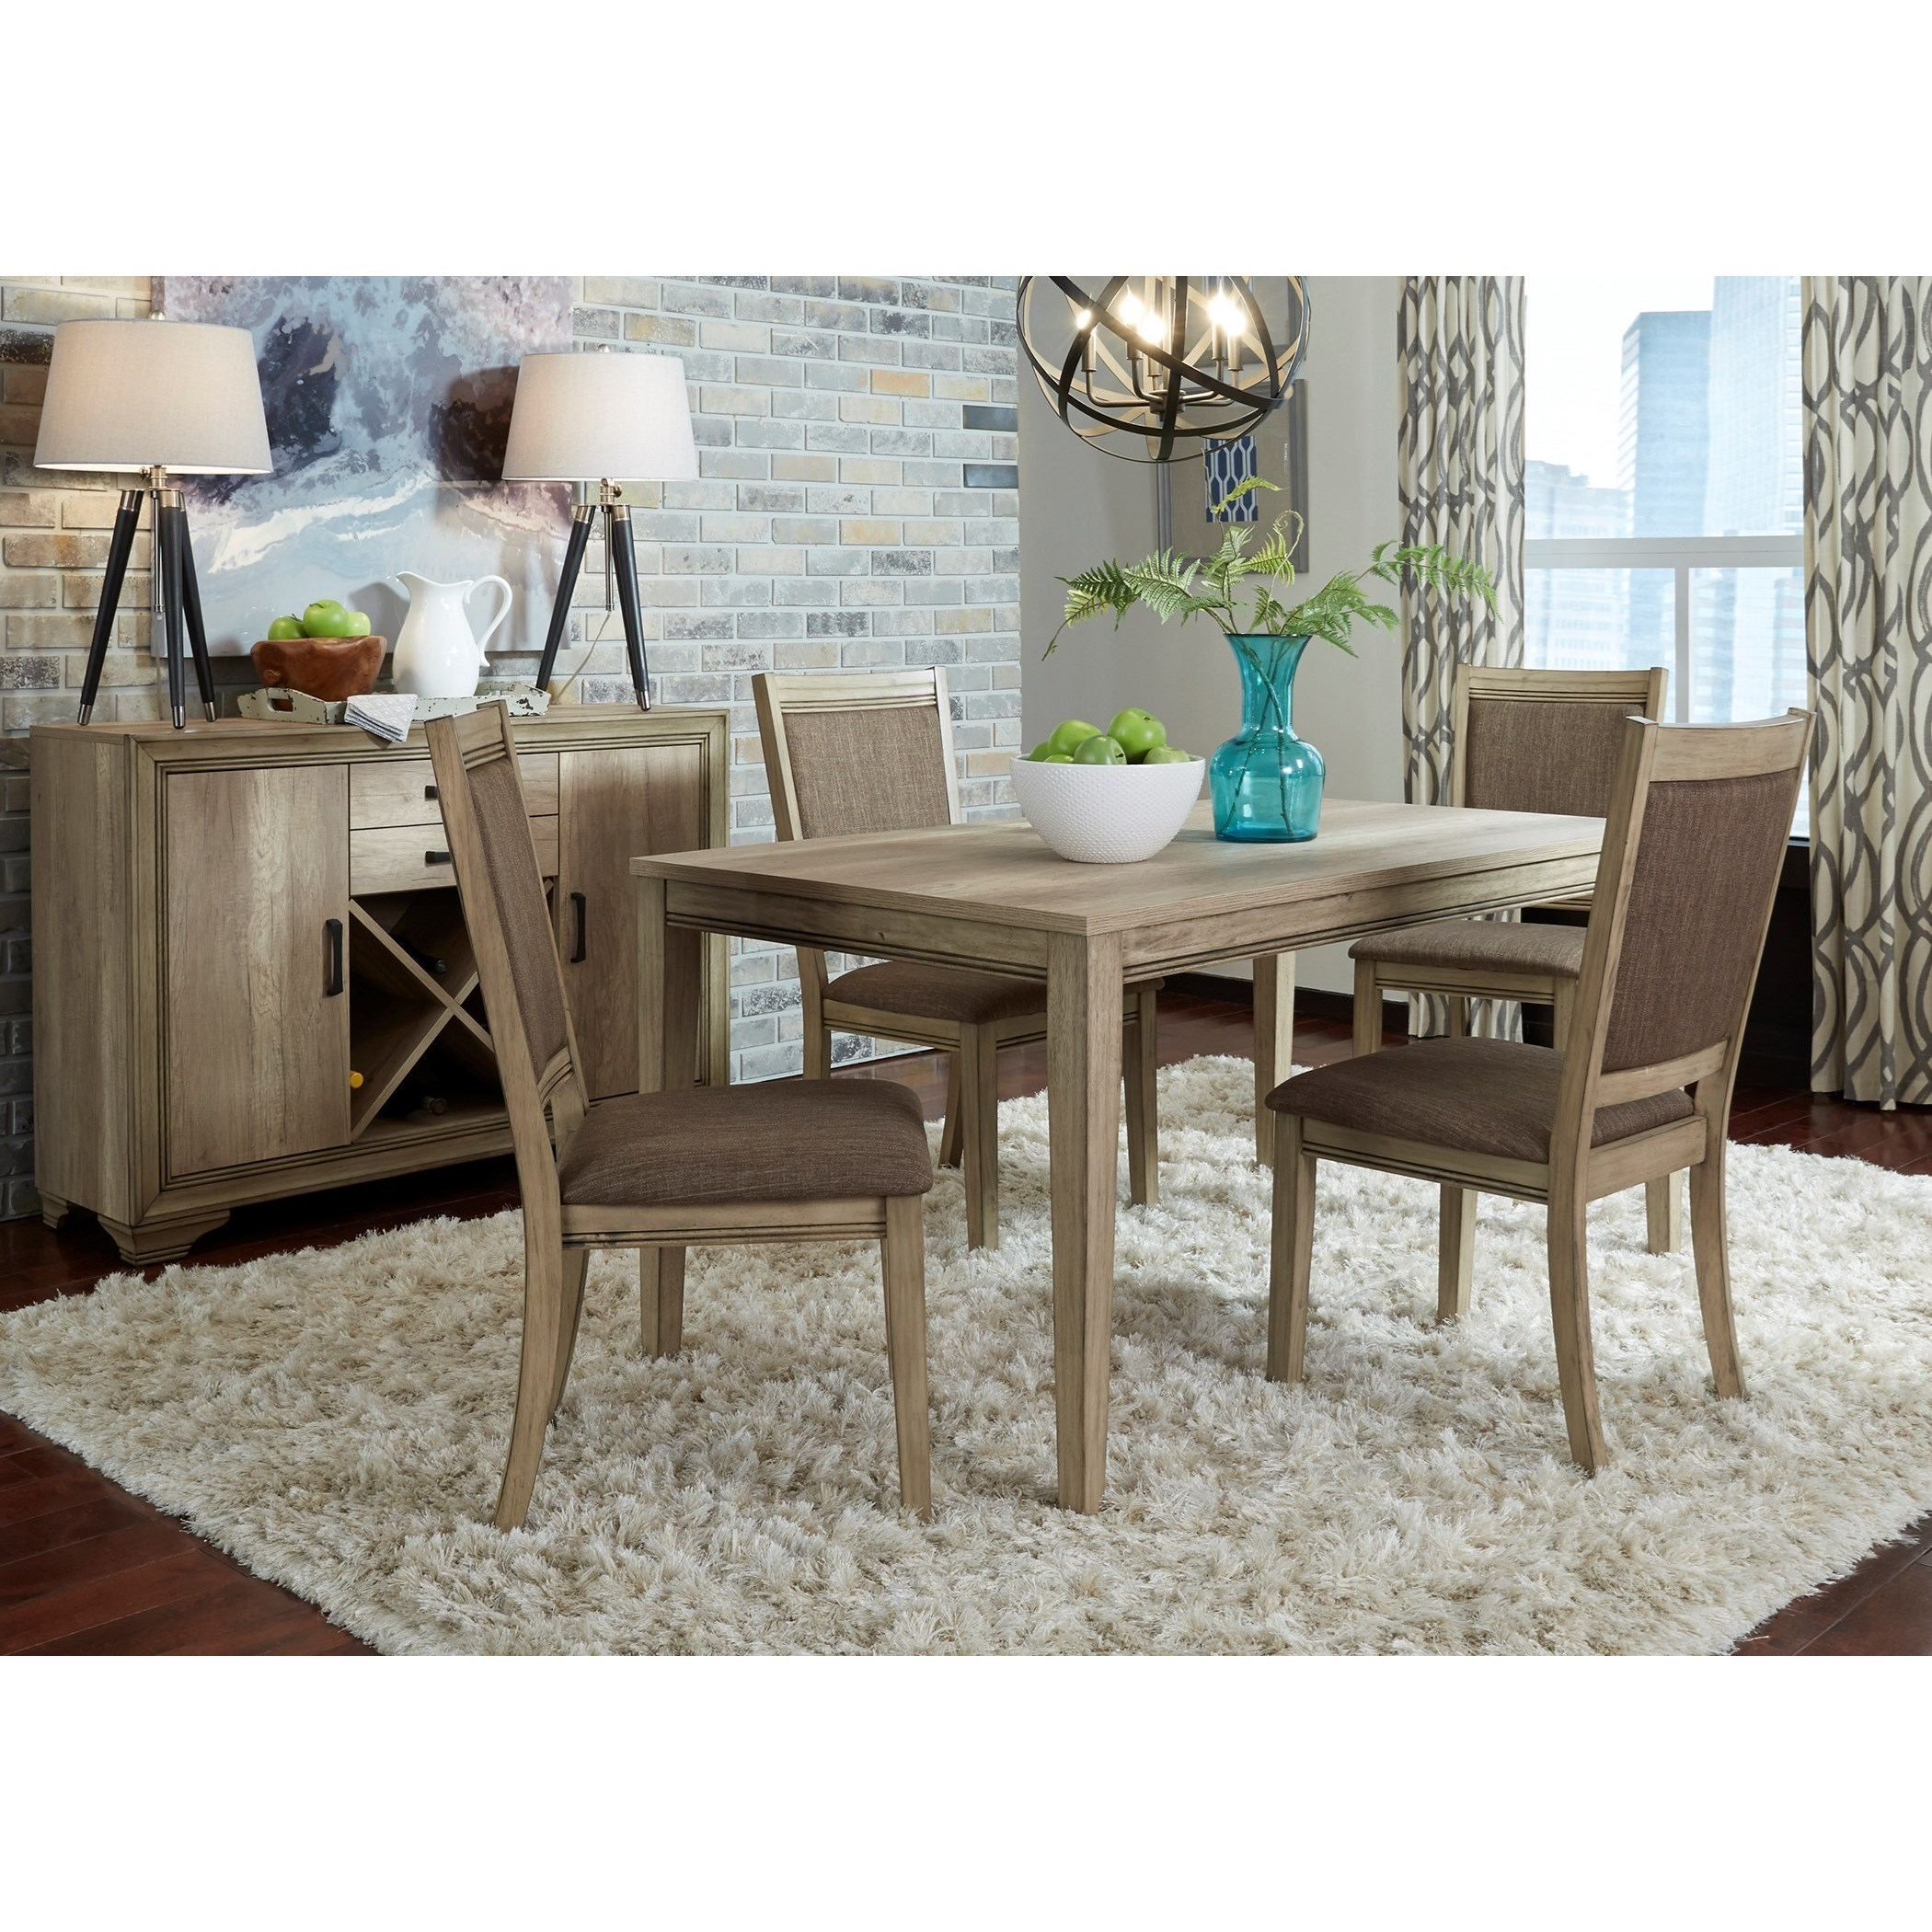 Sun Valley Casual Dining Room Group by Liberty Furniture at Van Hill Furniture